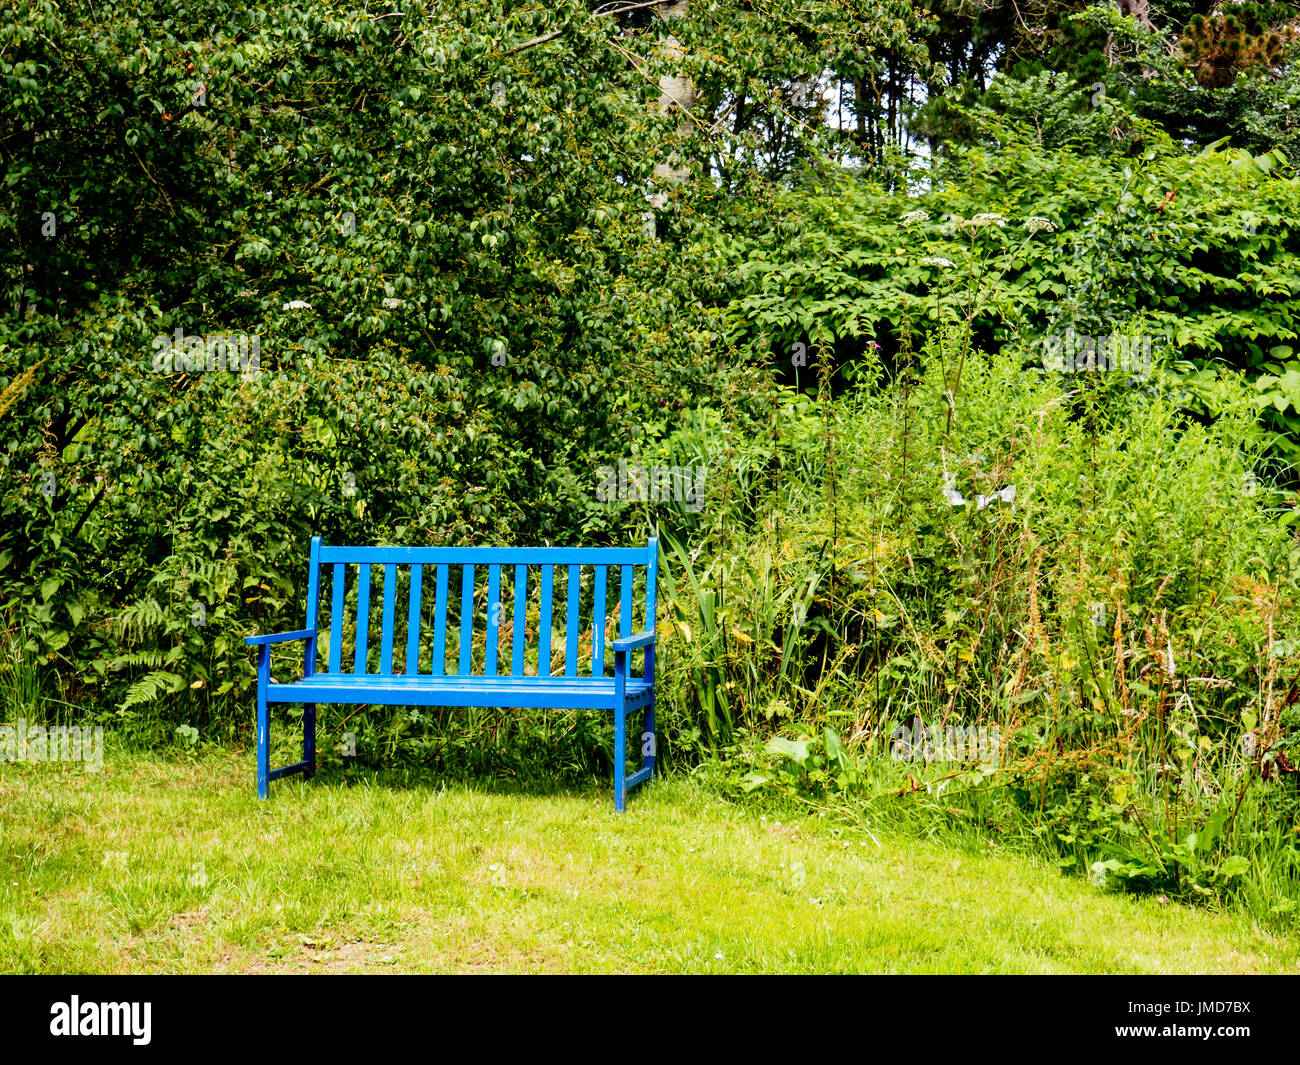 Outstanding A Bright Blue Bench Contrasts With Brilliant Green Shrubs Gmtry Best Dining Table And Chair Ideas Images Gmtryco